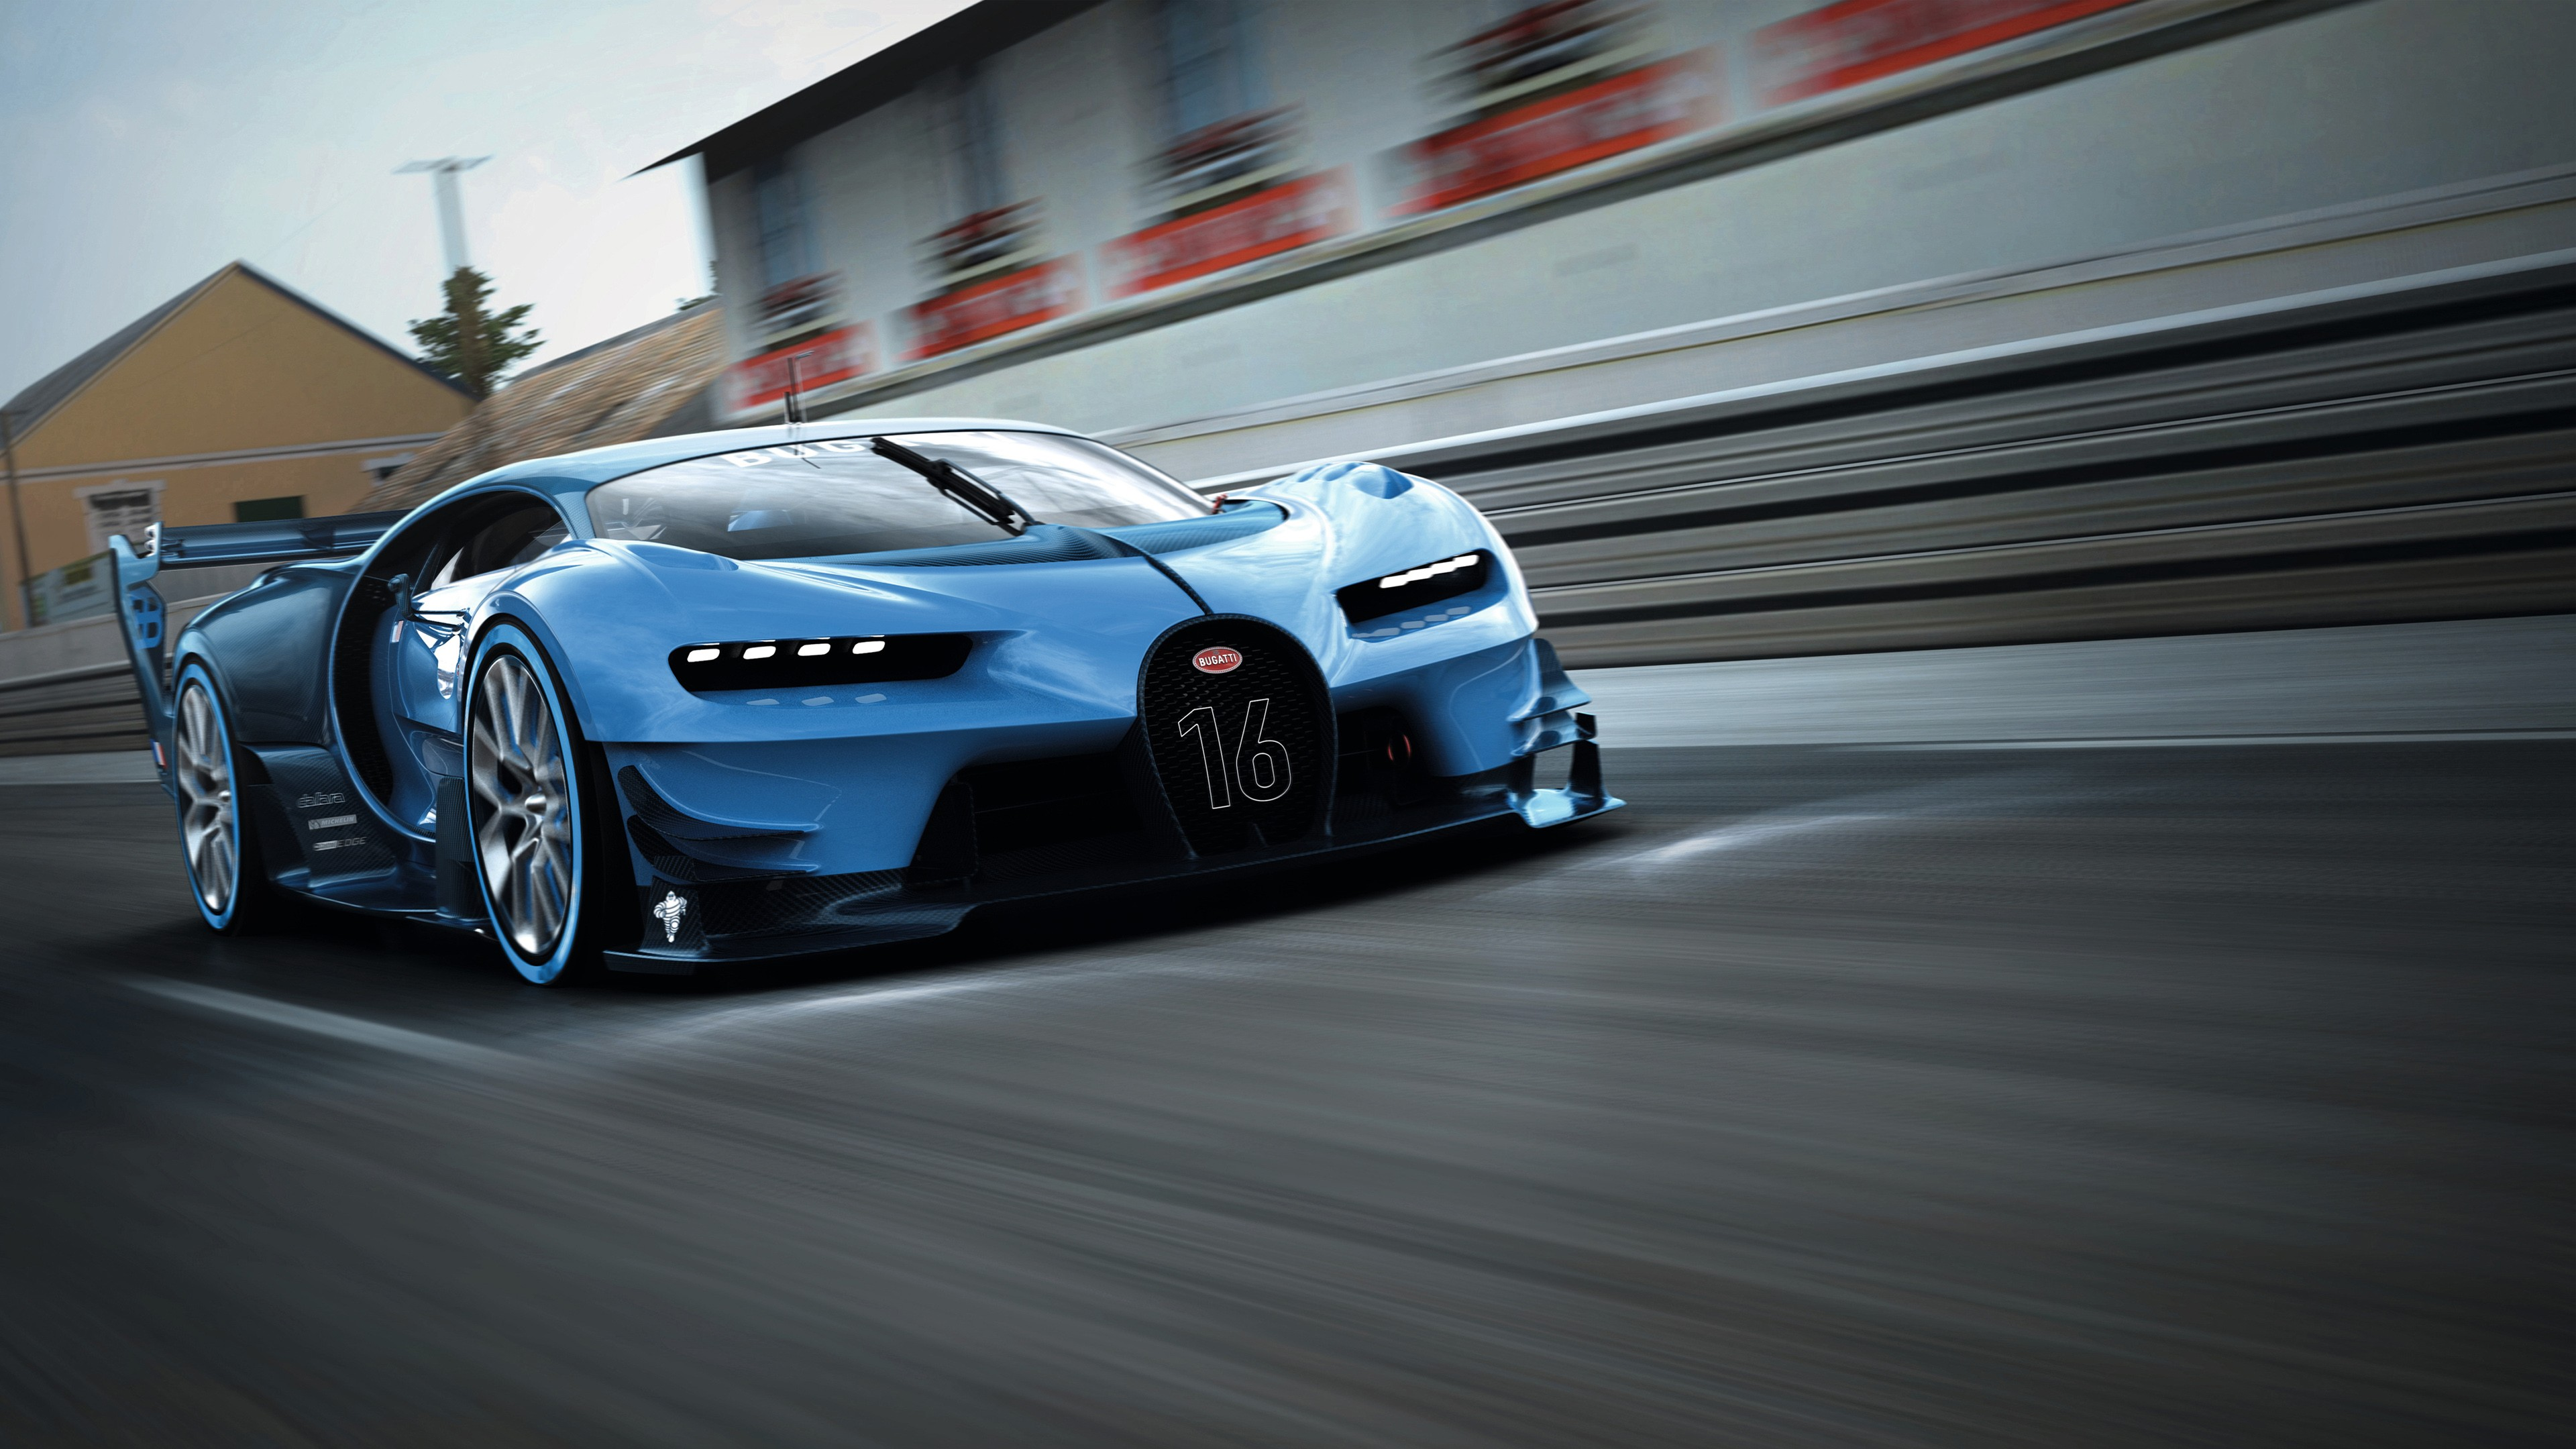 Bugatti Vision Gran Turismo 2015 Wallpaper Hd Car Wallpapers